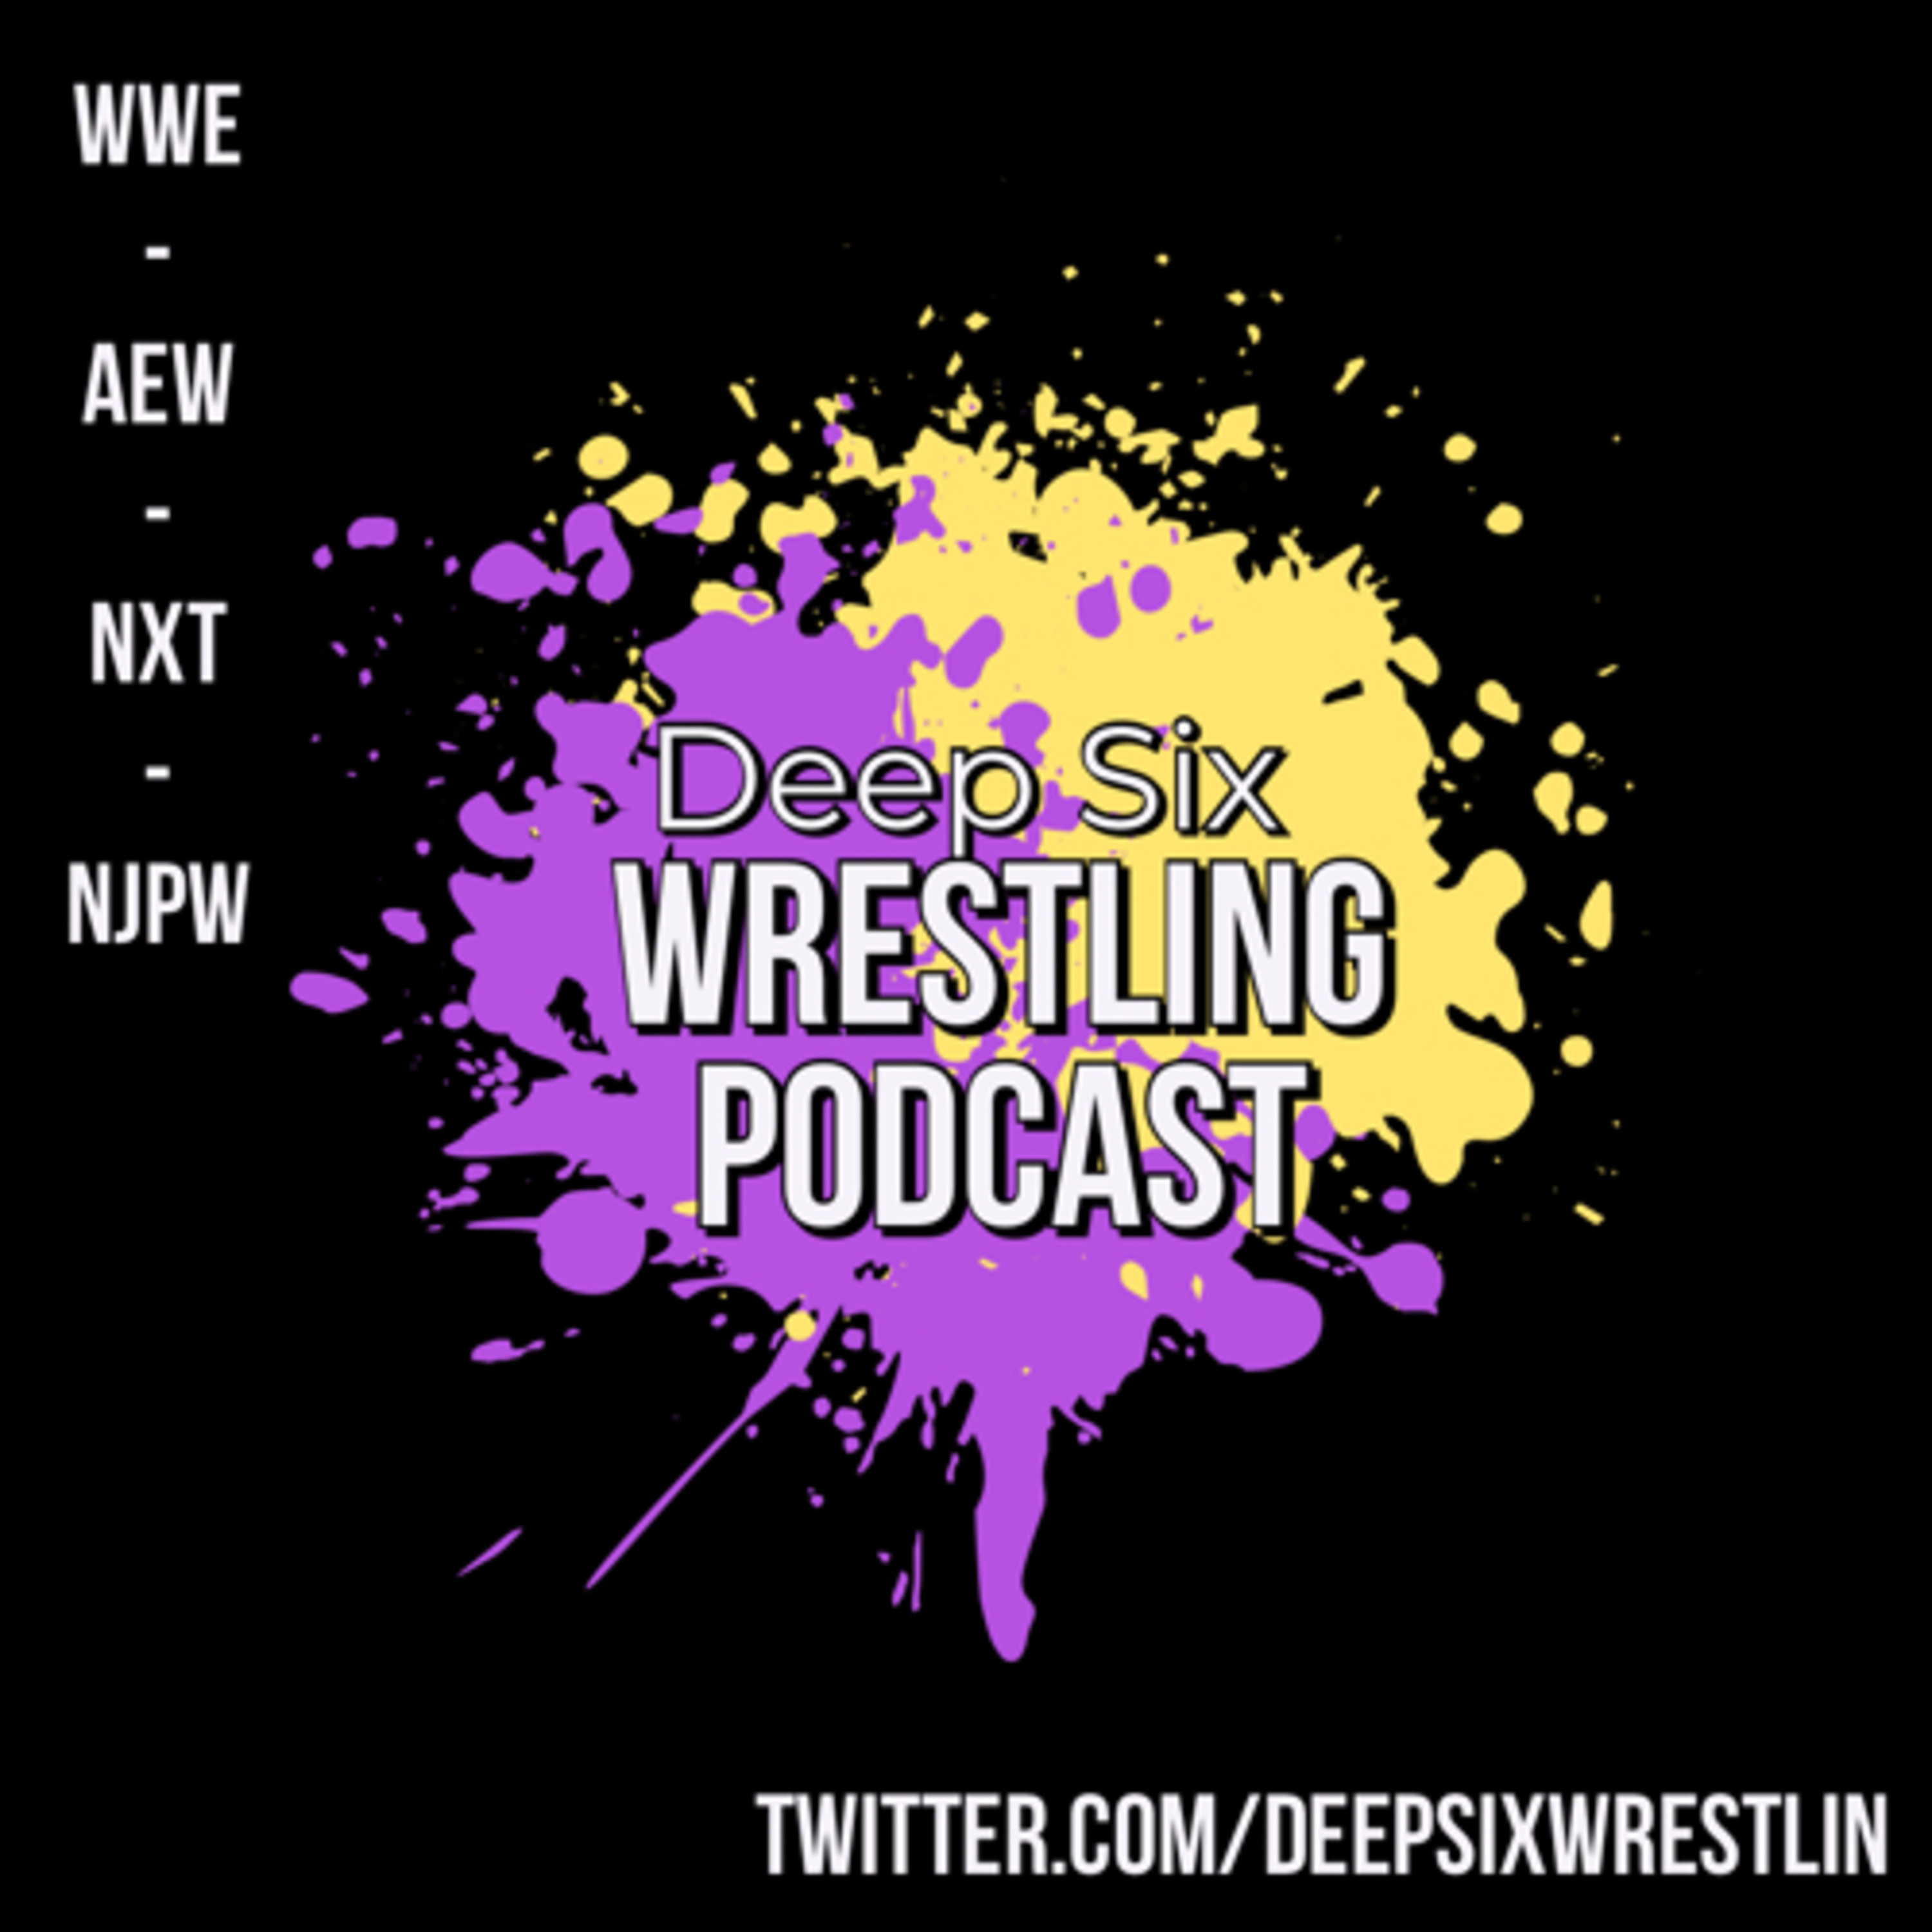 Episode 14: George Floyd + State of America, and (6/3/20) AEW Dynamite Reactions + Review